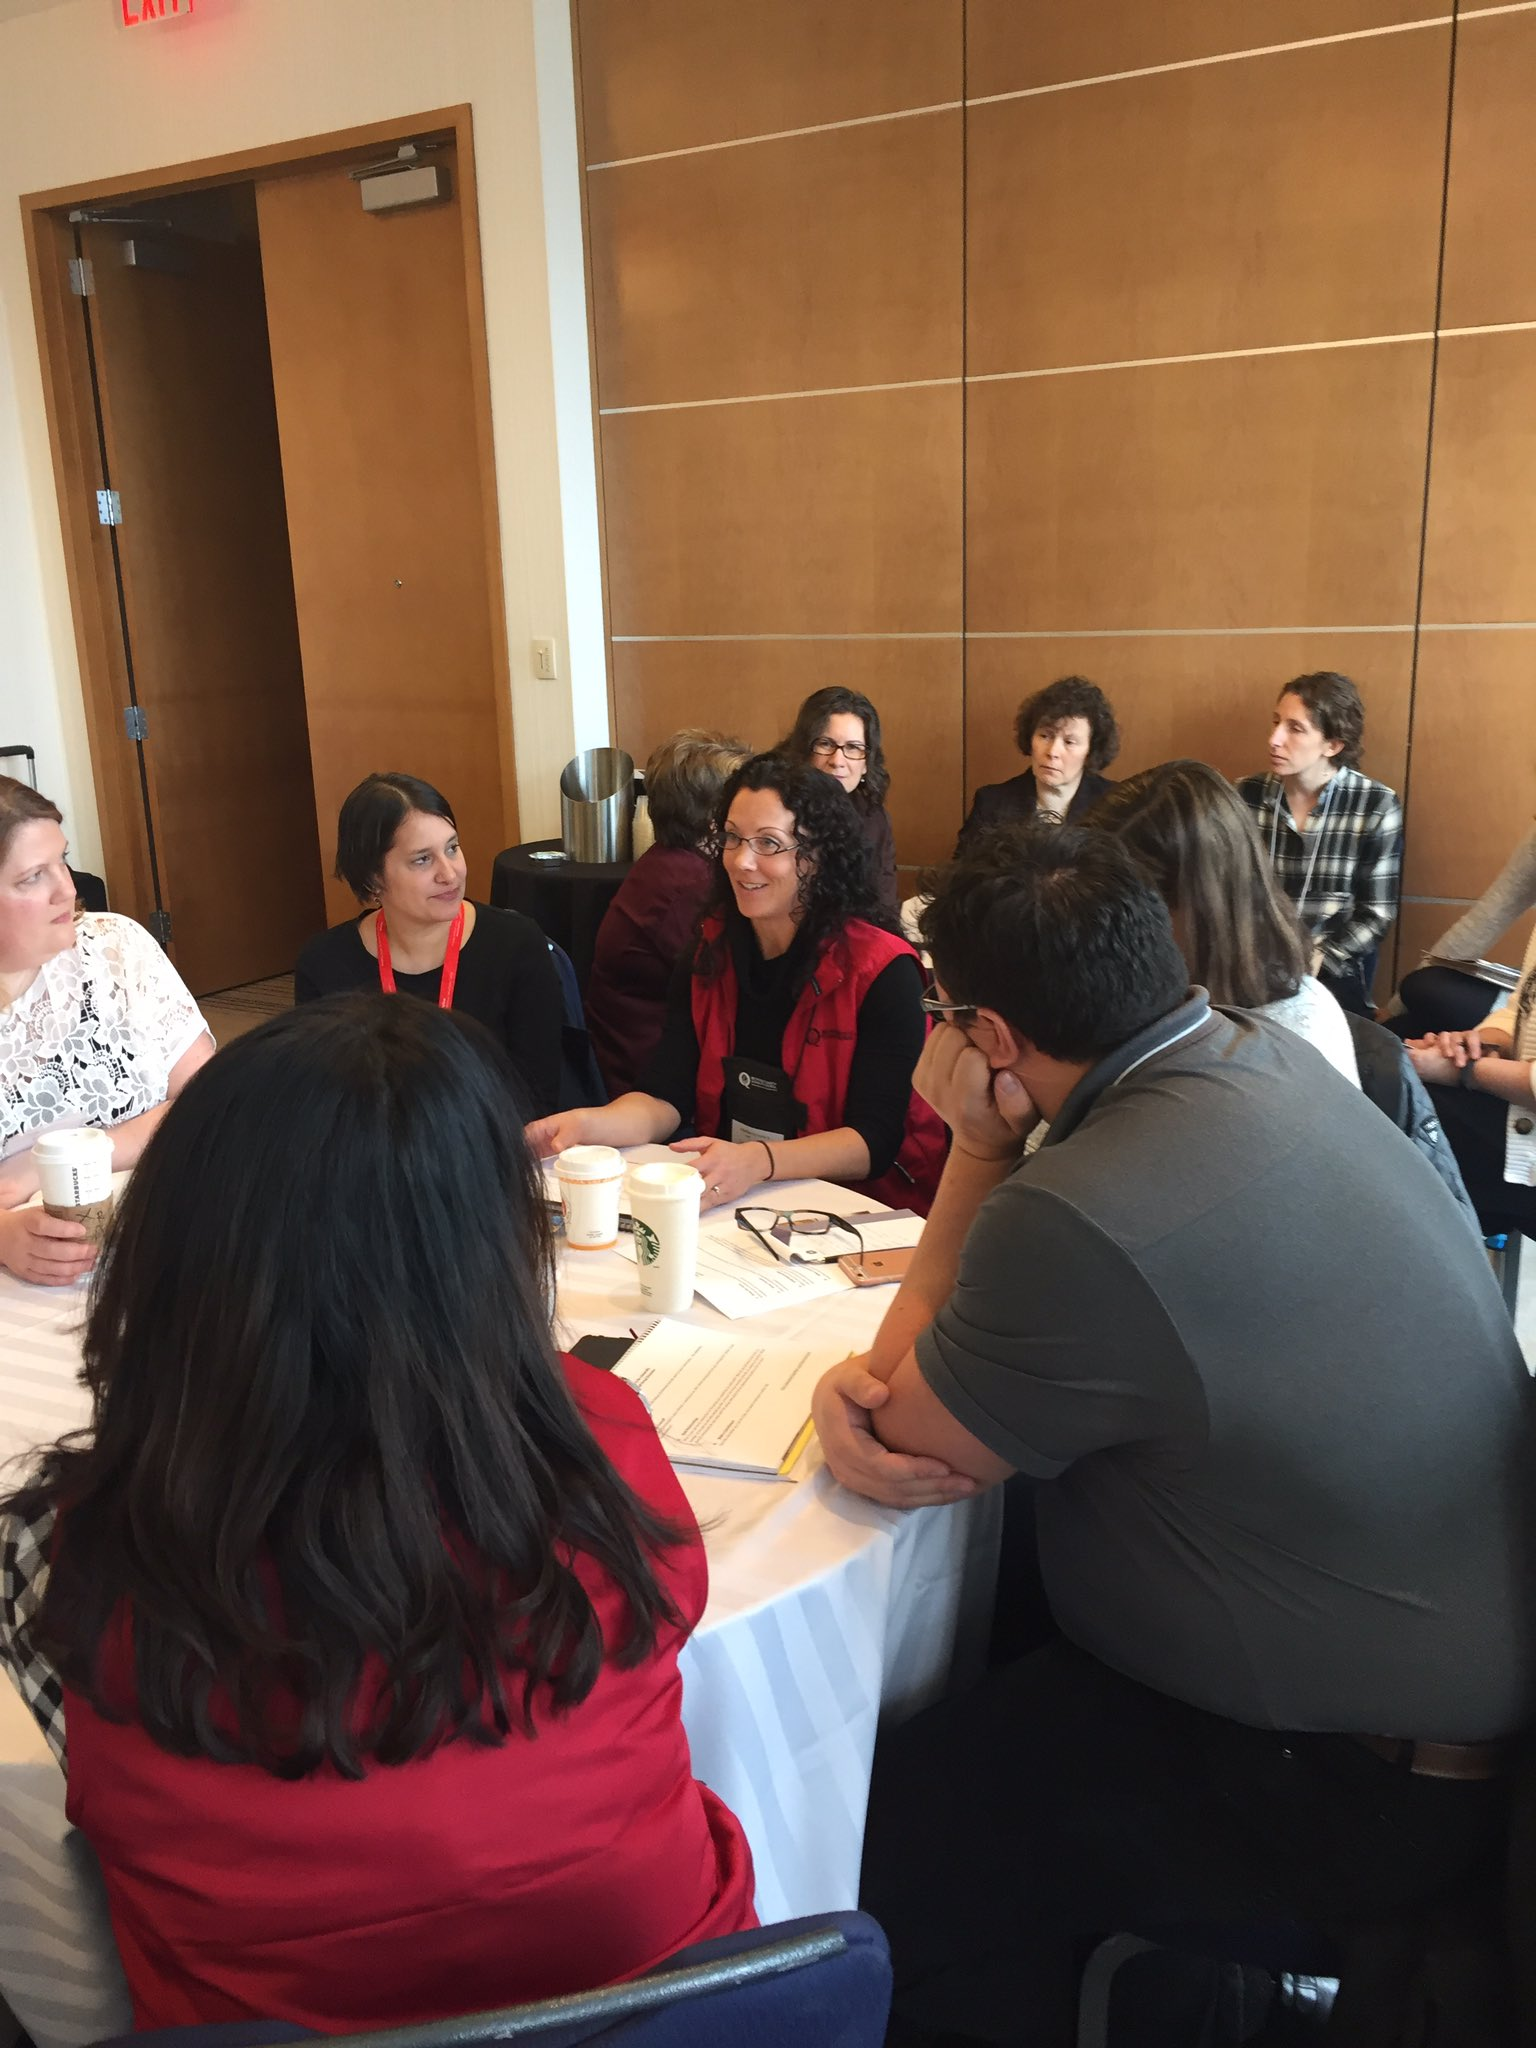 @jac4ENG engaged in rich conversation on how to be an ally. #QF17 https://t.co/PTq7z3dGmH